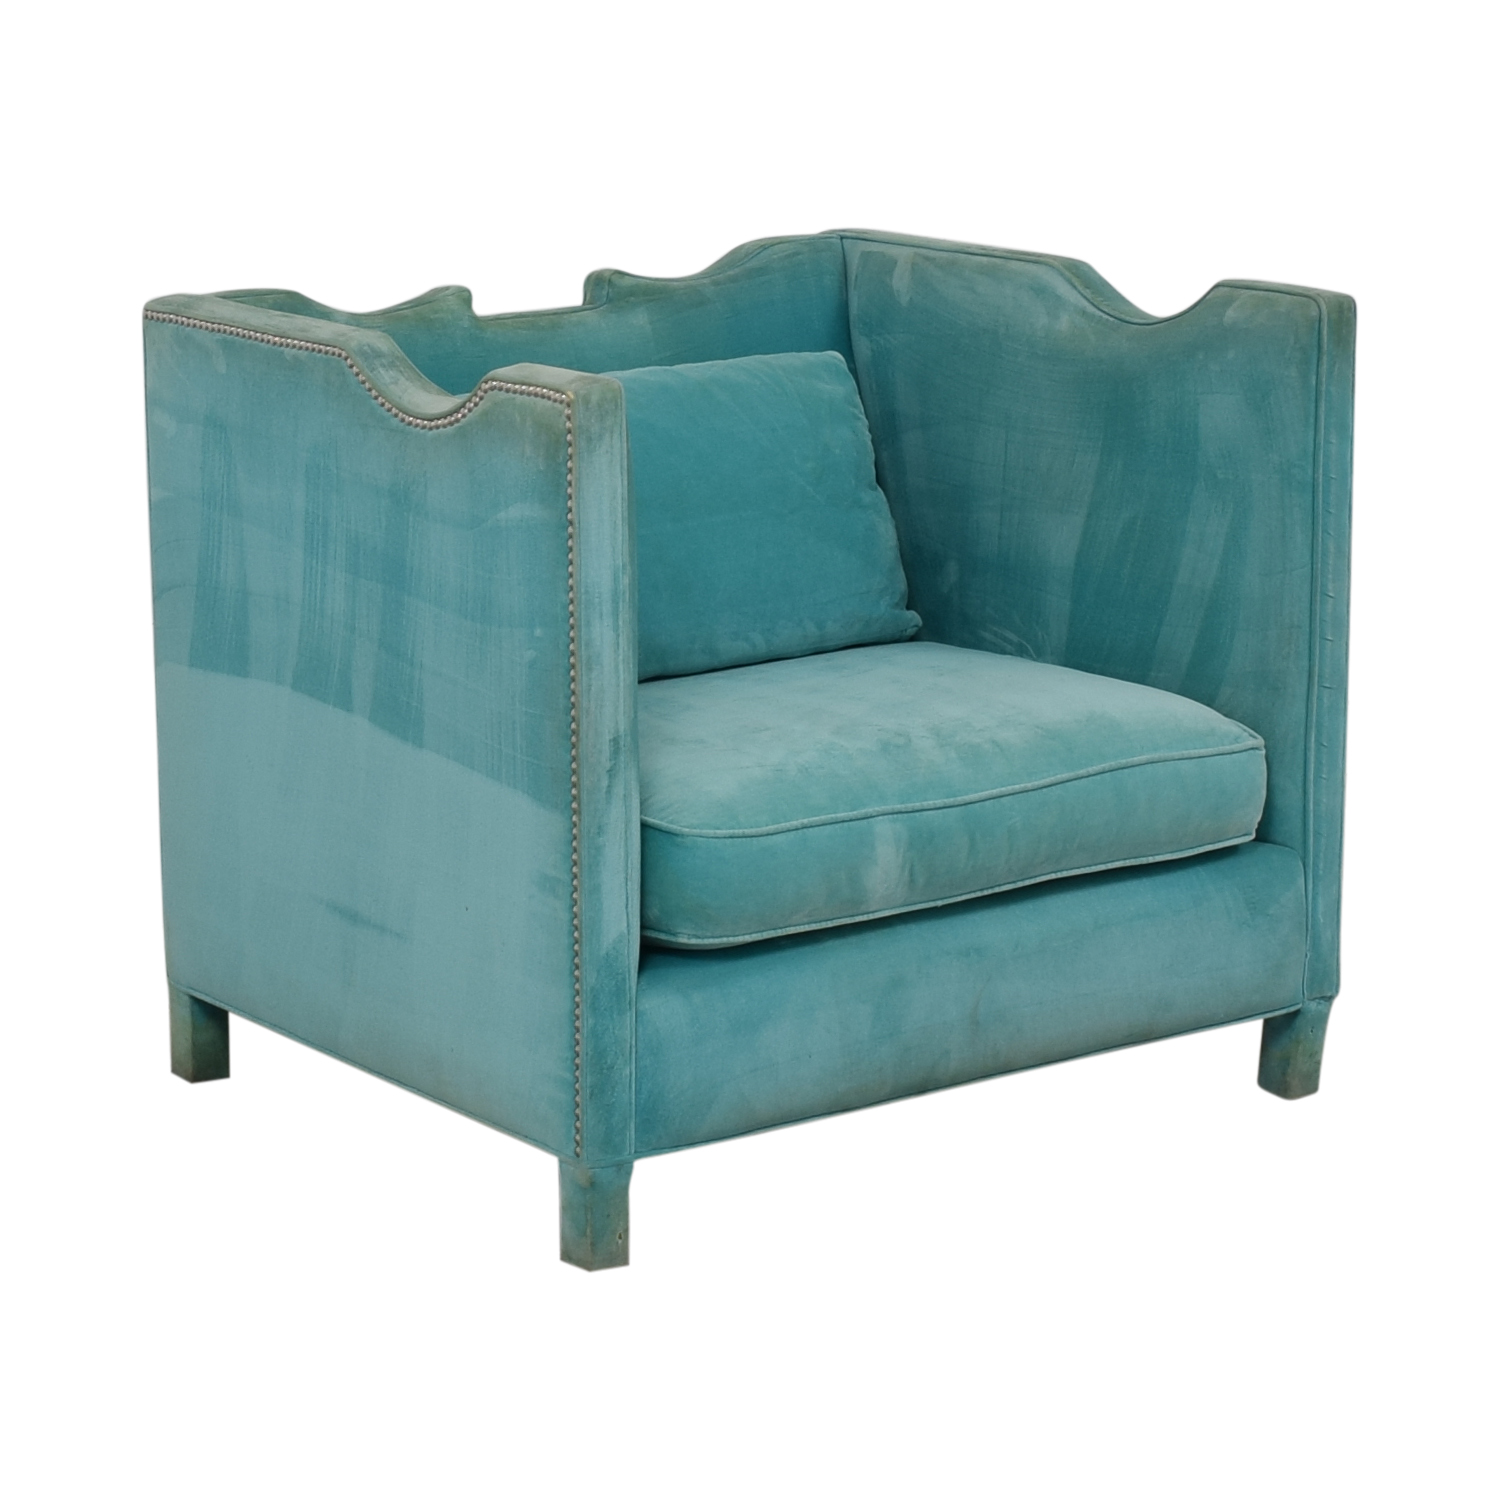 buy Shine by S.H.O Limoge Chair Cotton Velvet with Polished Nickel Studs Shine by S.H.O Chairs